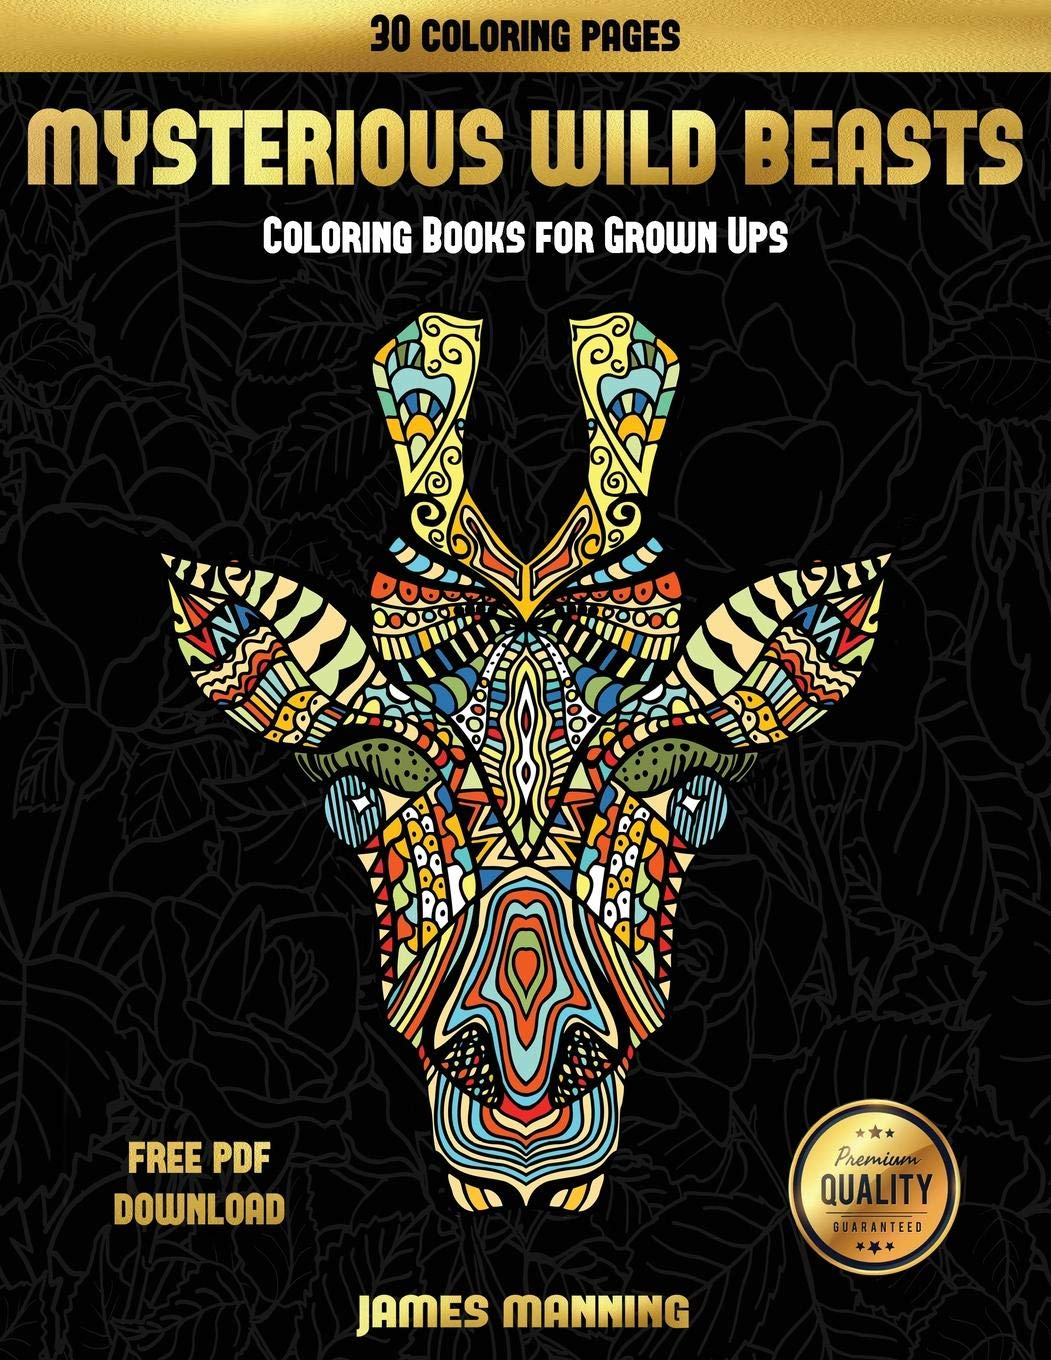 Amazon com: Coloring Books for Grown Ups (Mysterious Wild